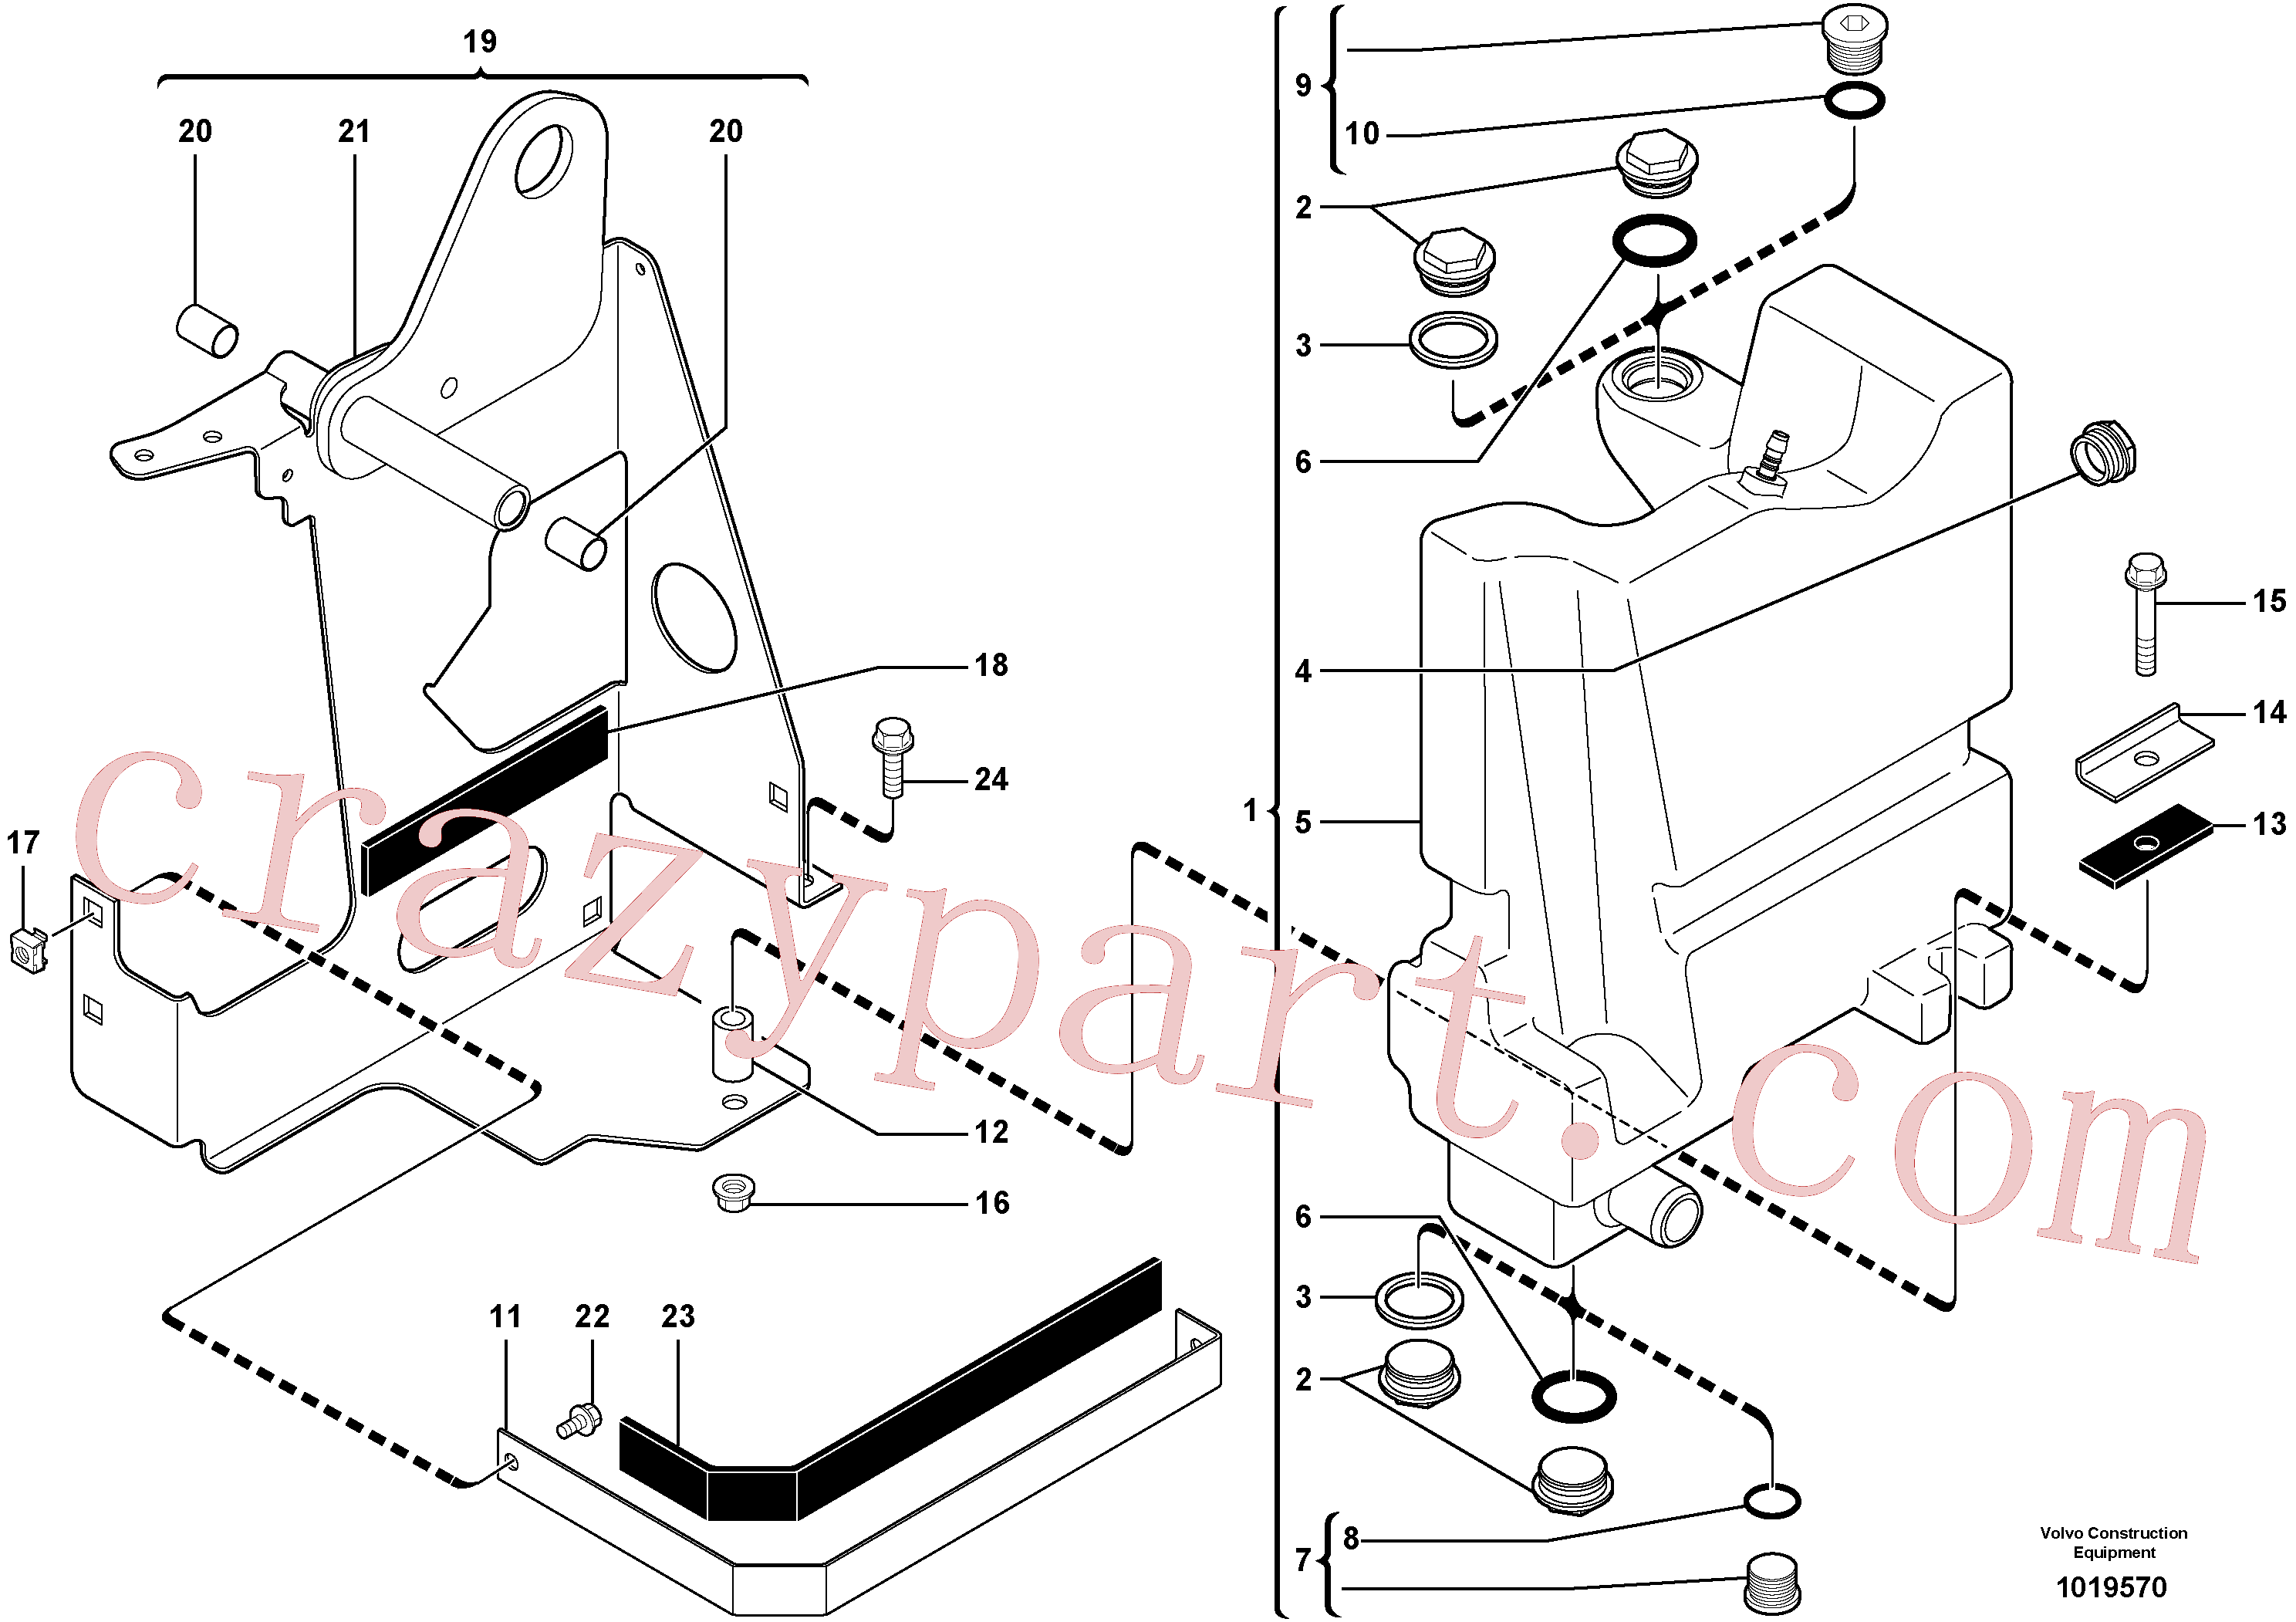 VOE11806158 for Volvo Hydraulic tank(1019570 assembly)